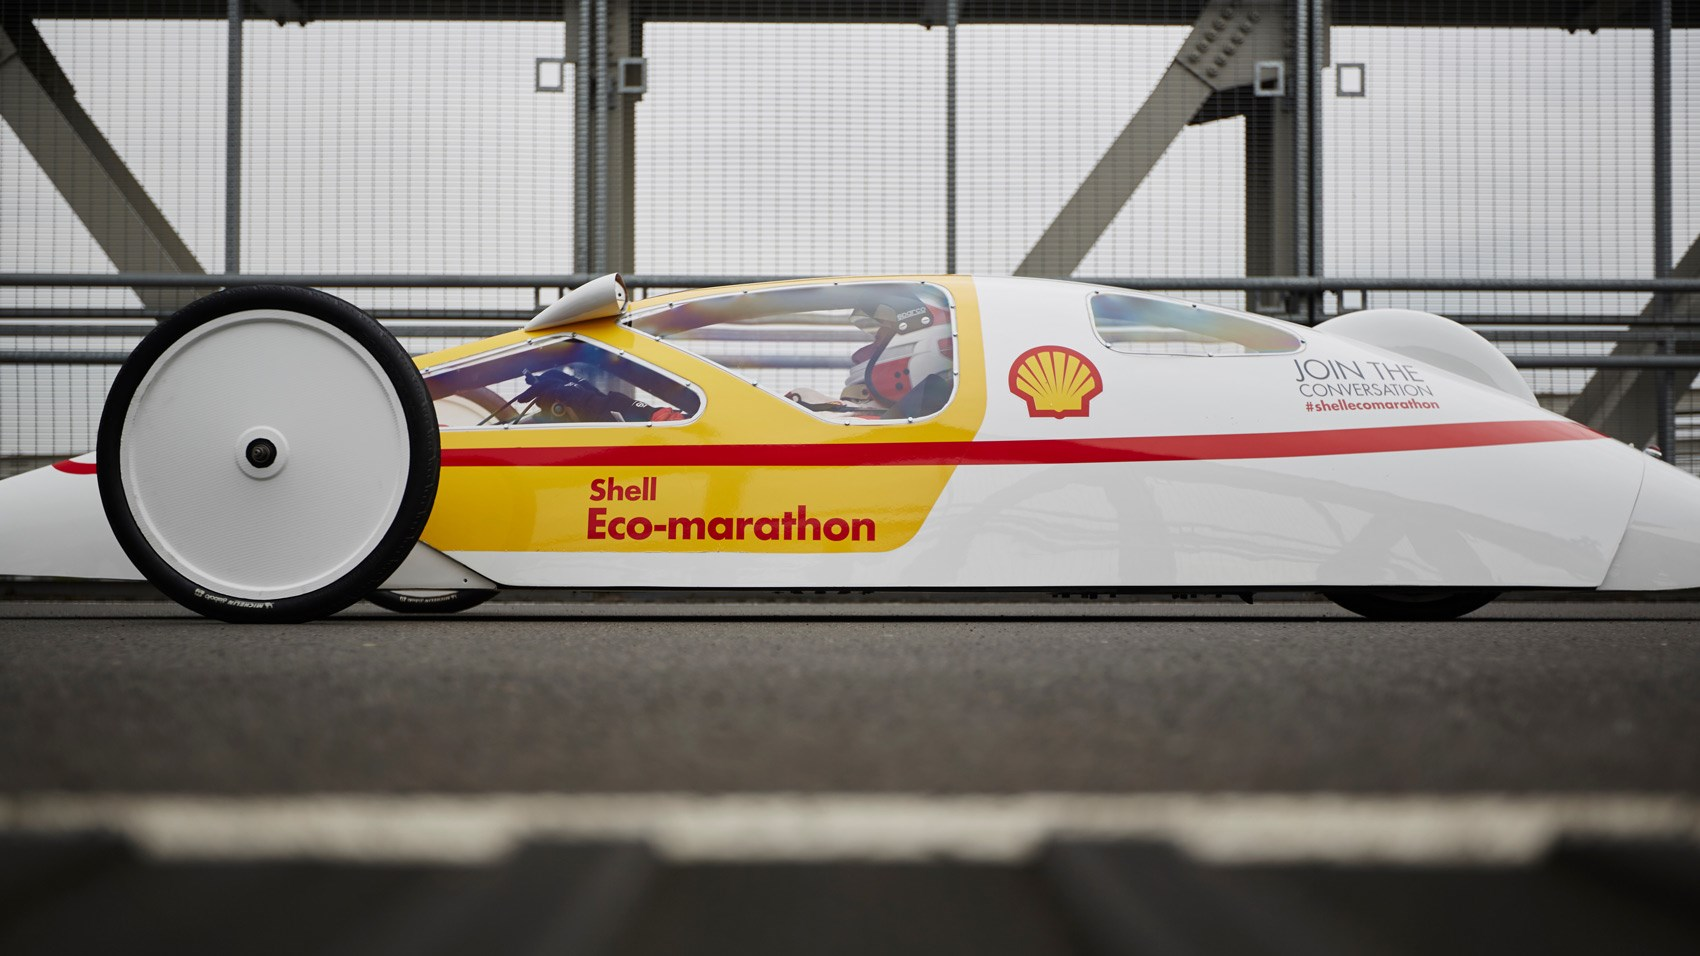 Shell Eco-Marathon prototype side